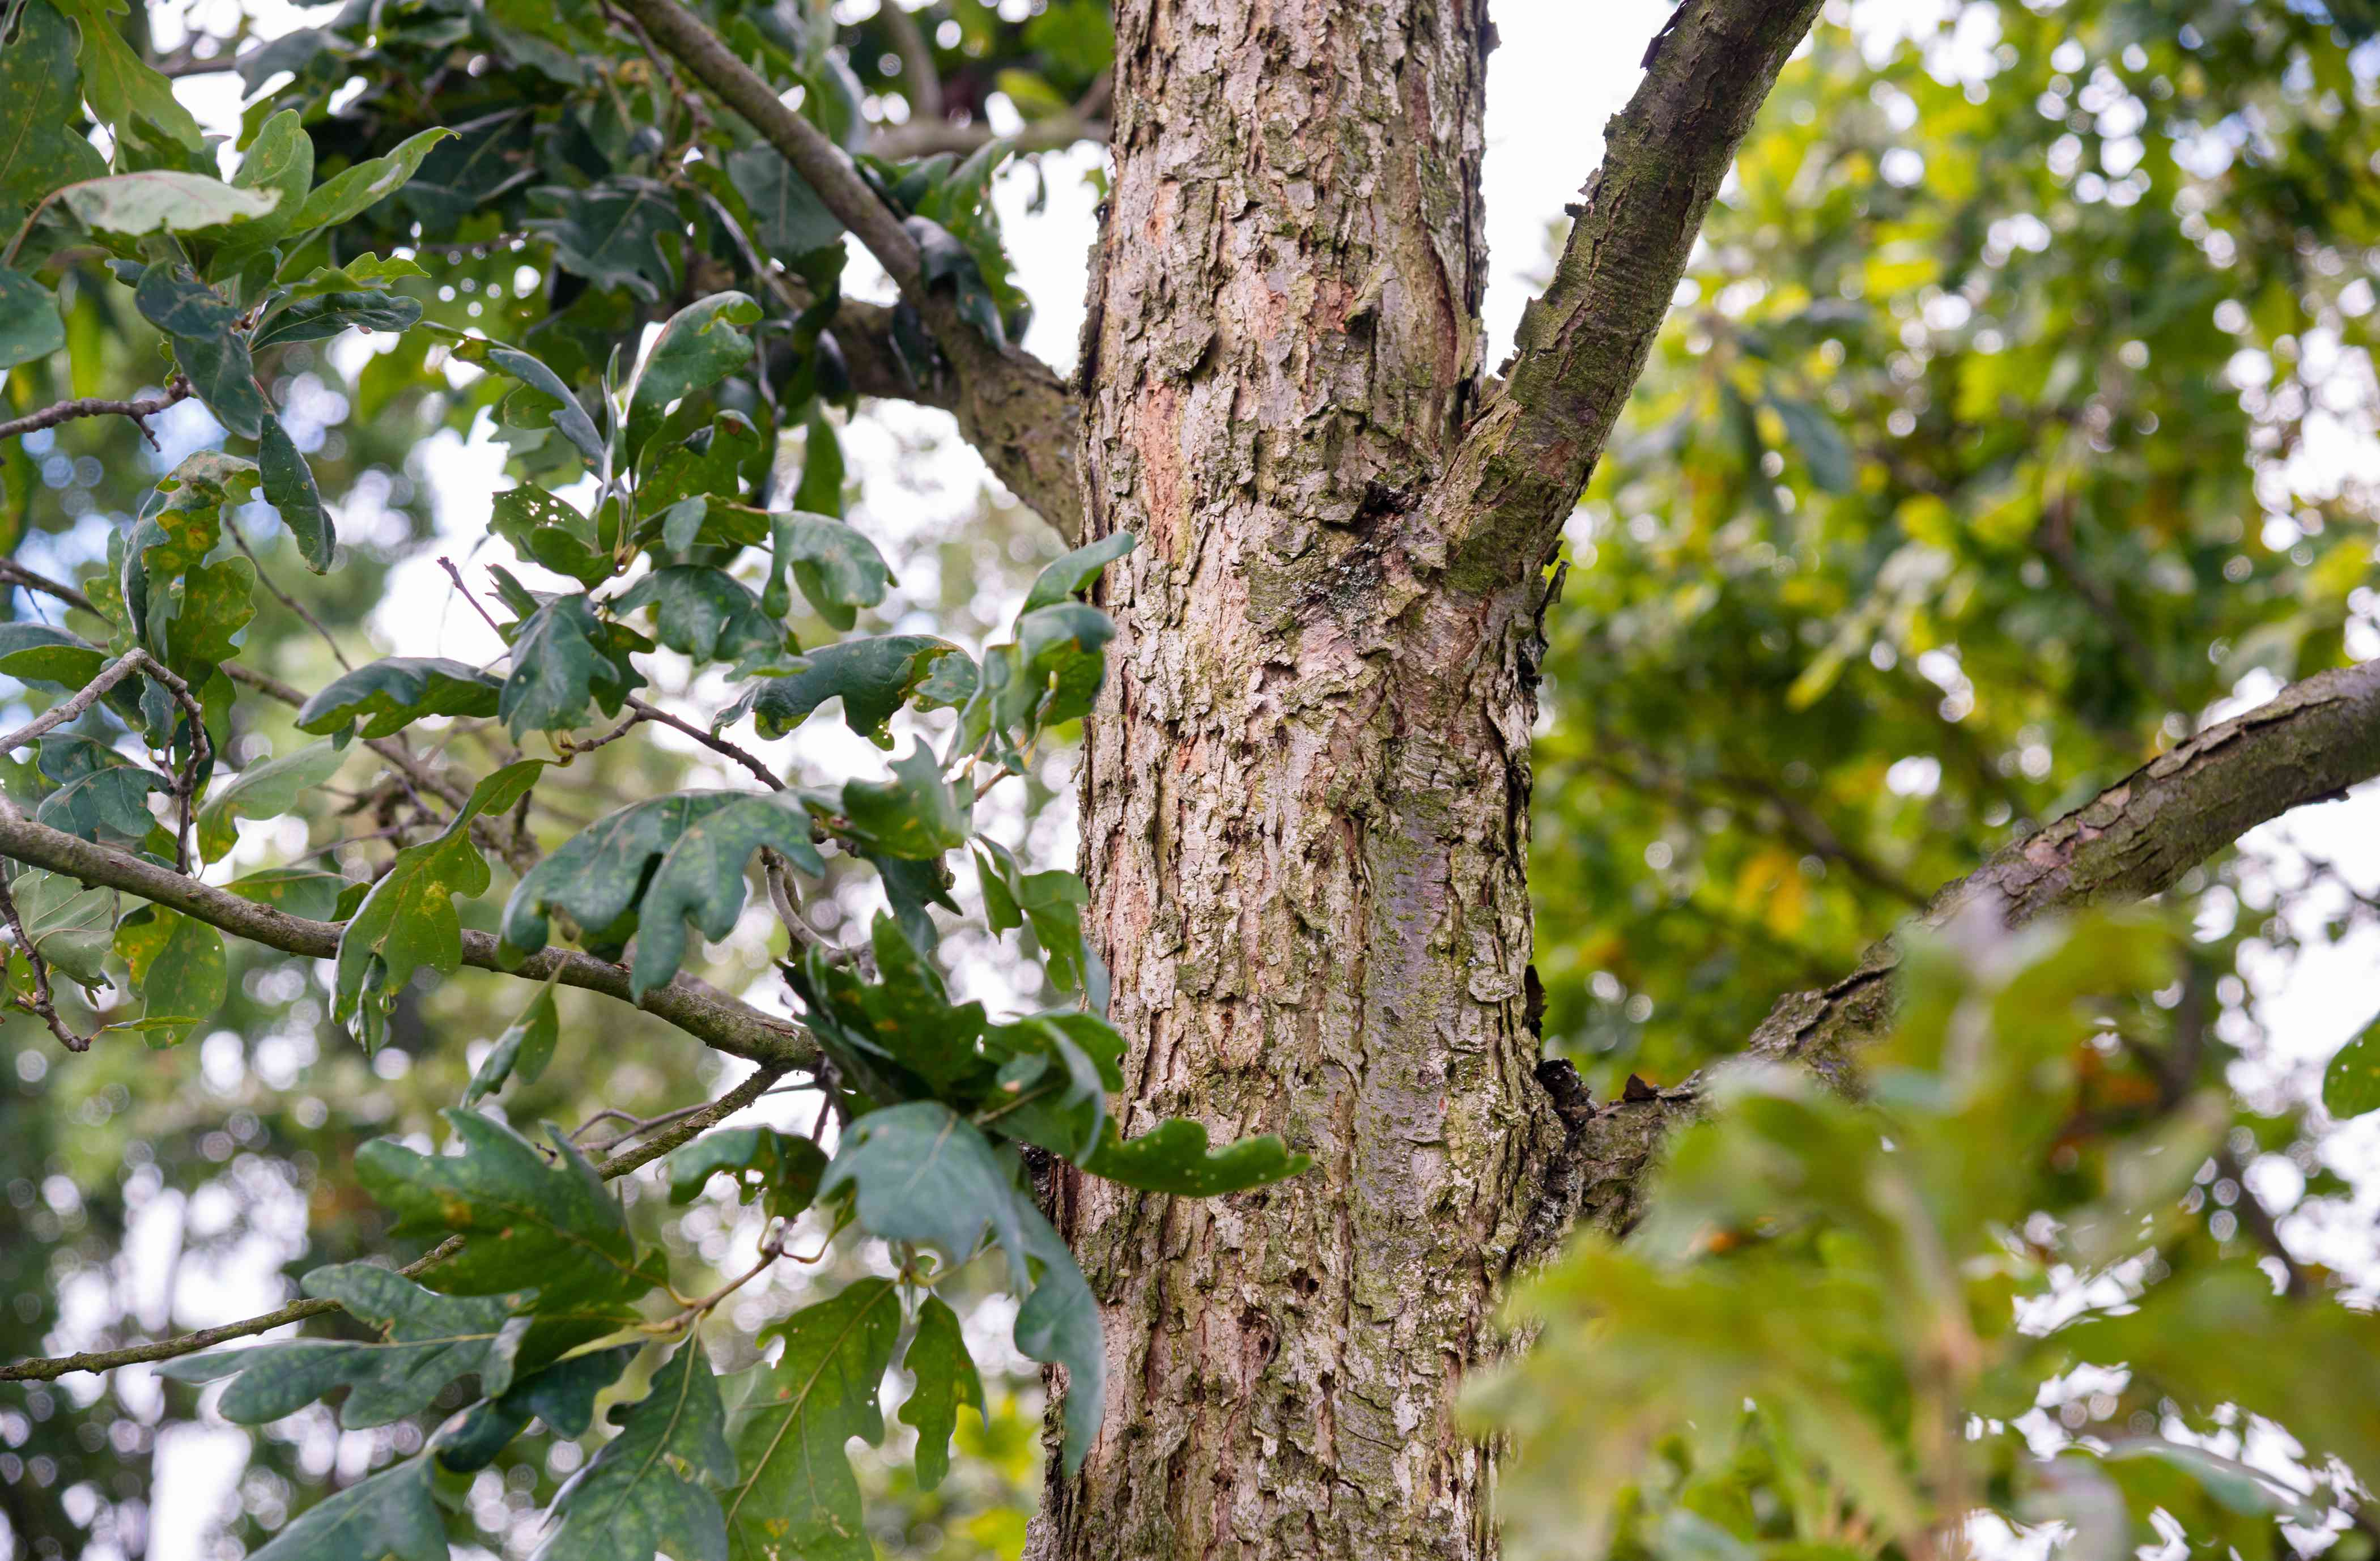 White oak tree trunk with brown peeling-like bark and large leaves